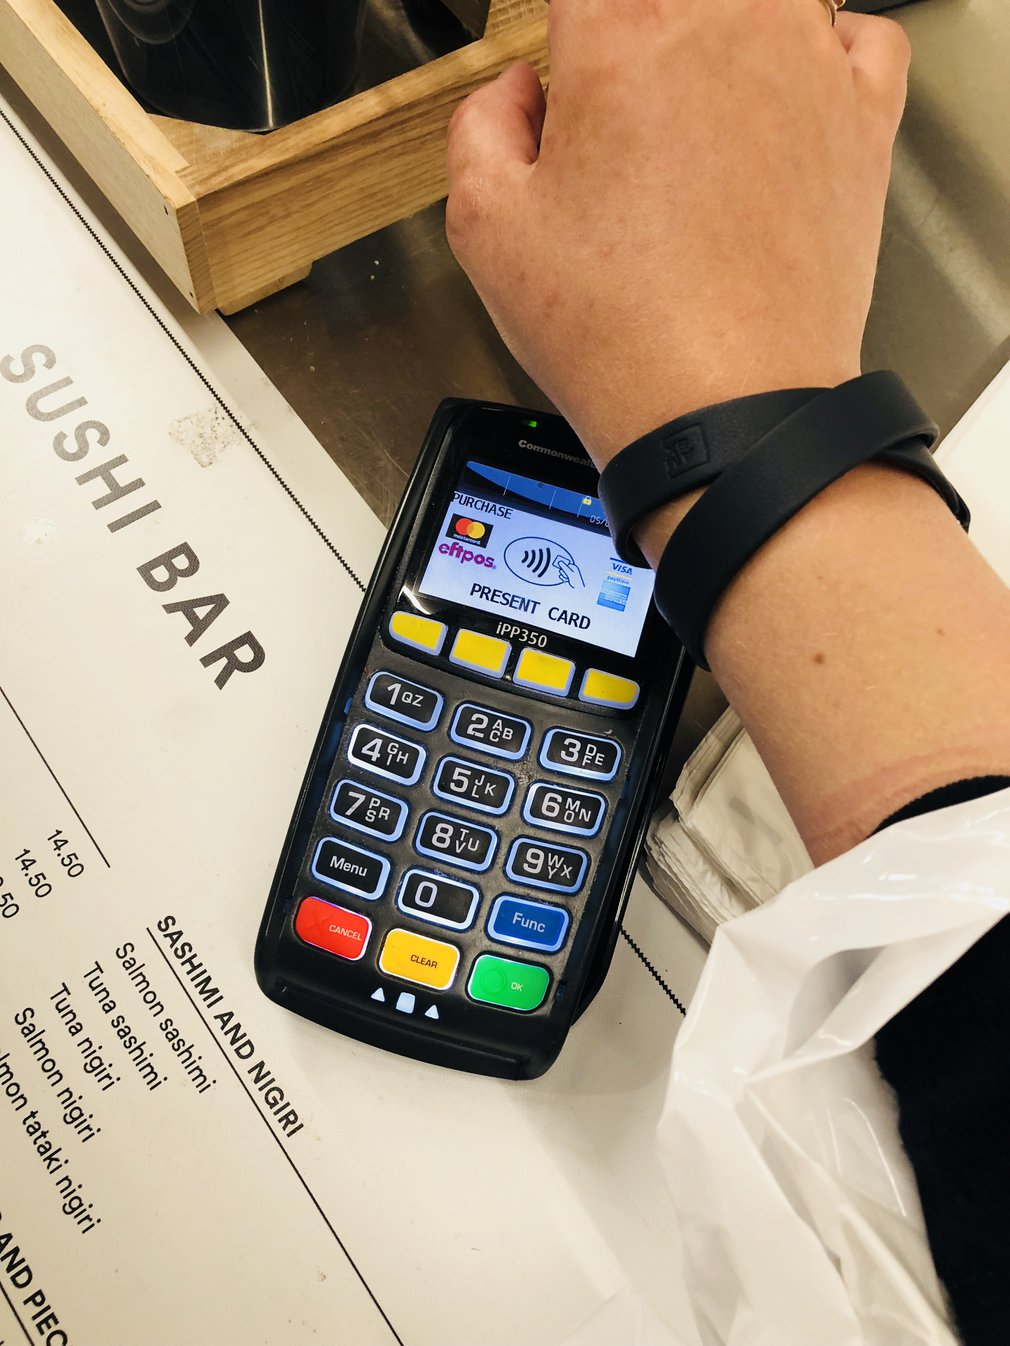 Amex payment band in use in Australia